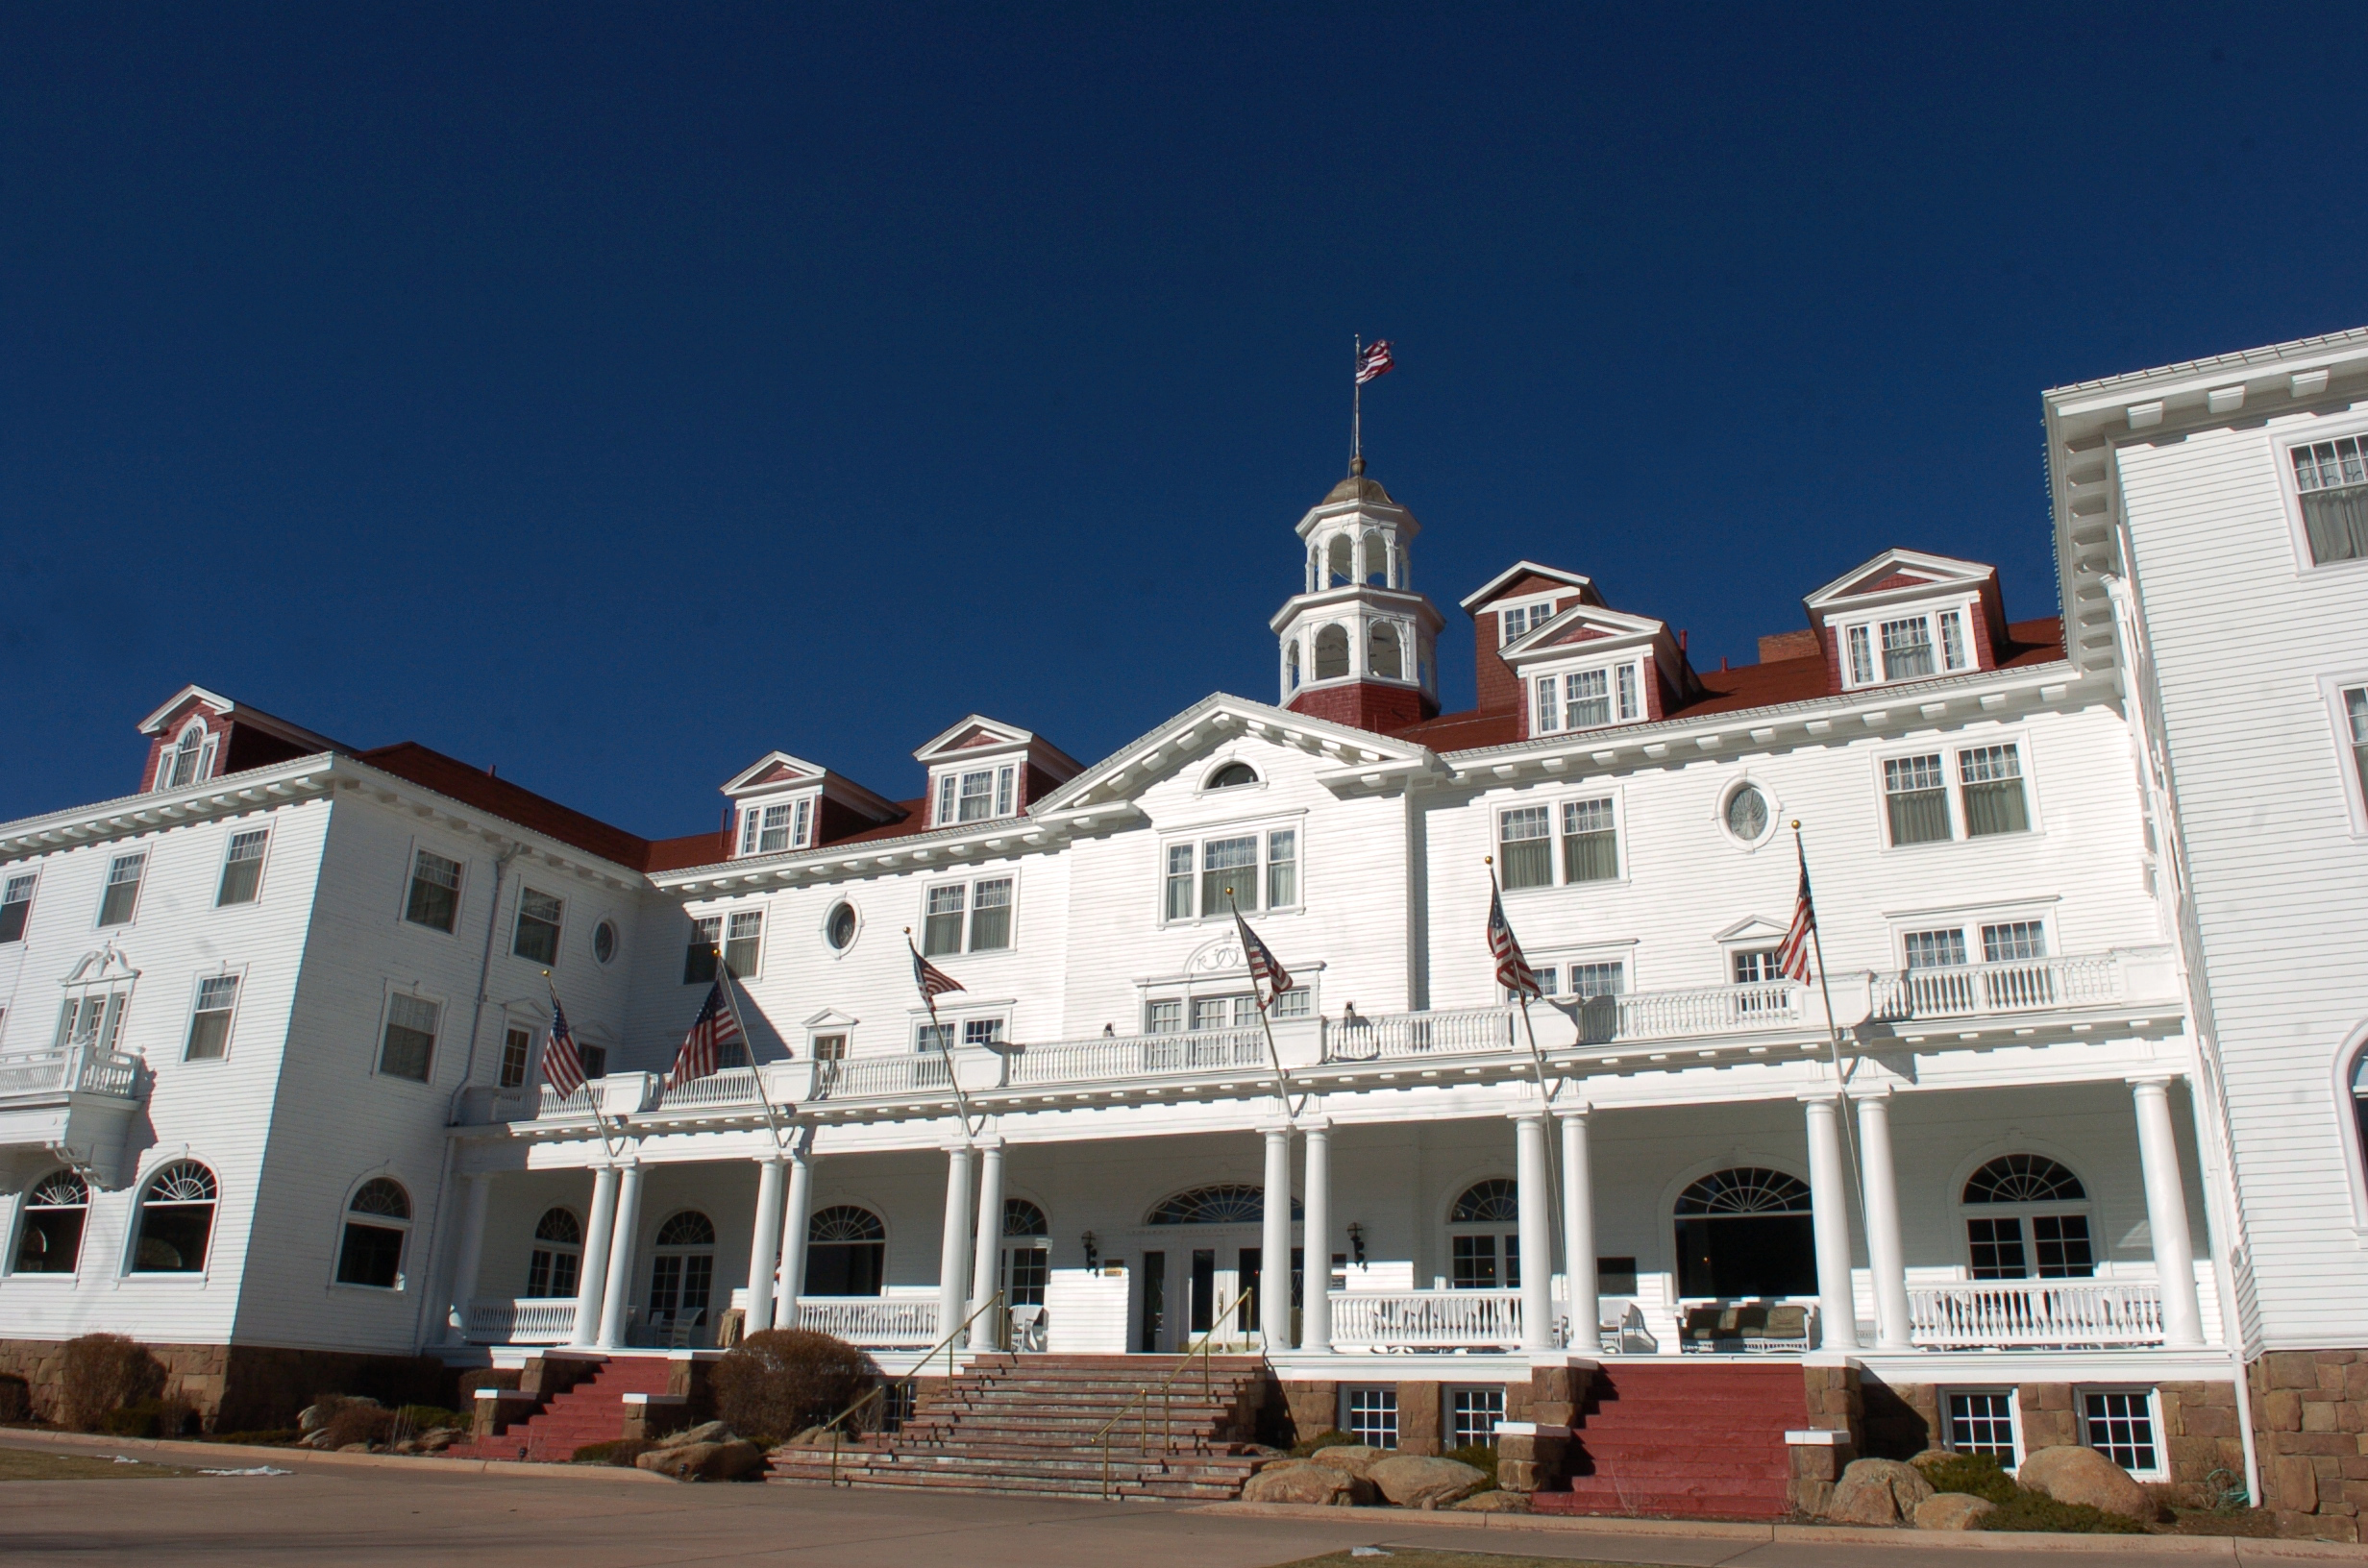 The Stanley Hotel in Estes Park, Colo.